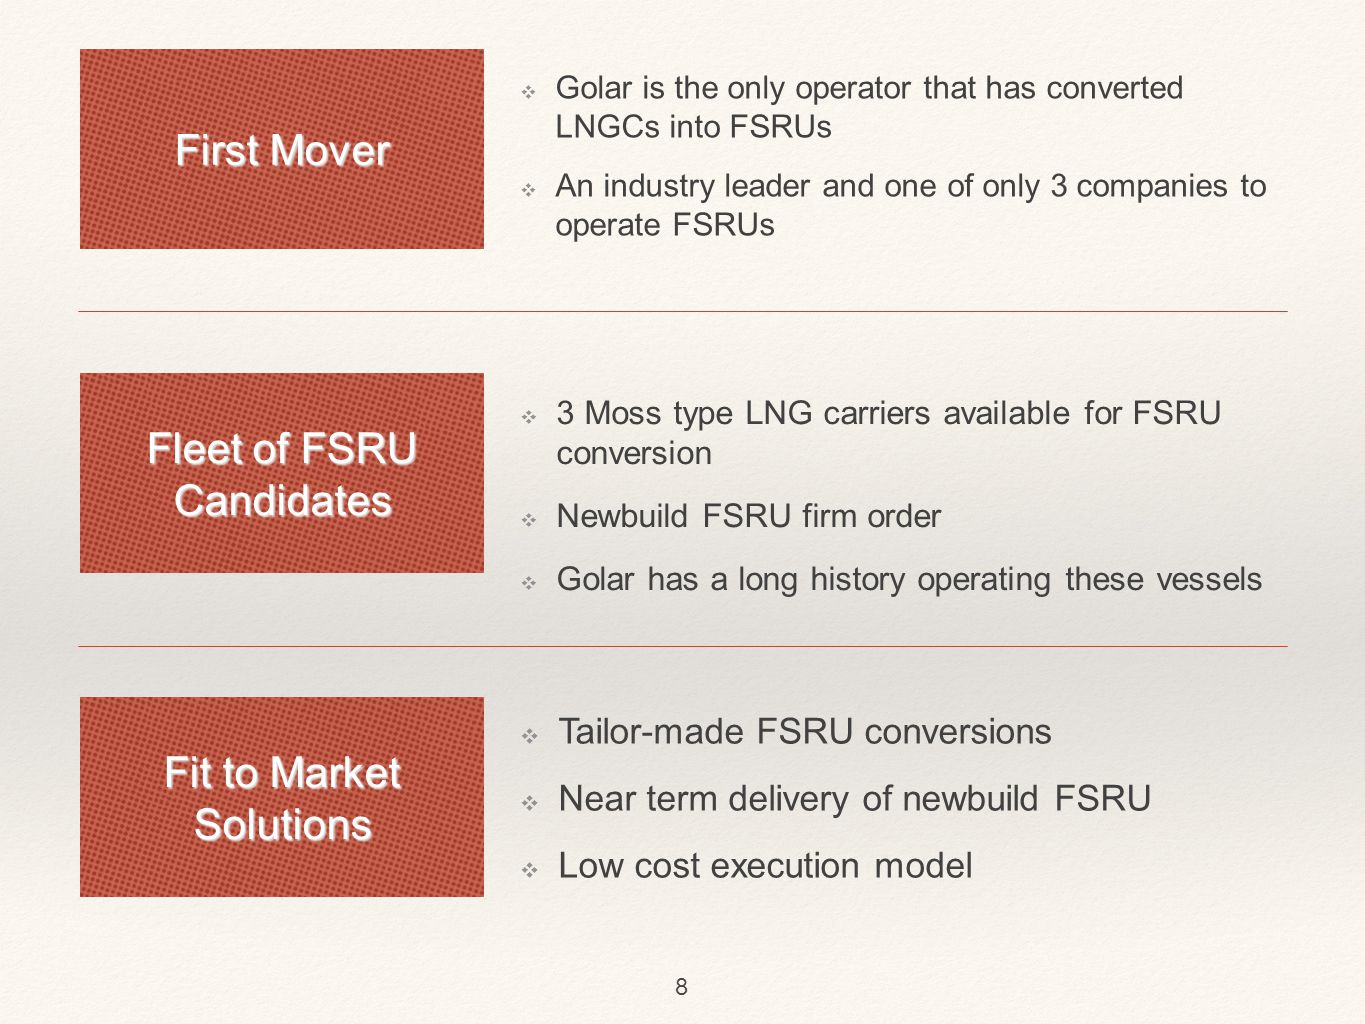 Golar LNG: Vooruitzicht ❖ Focus on leveraging LNG carriers and FSRU positions ❖ First priority is high value term employment ❖ 31.7.2013 - FSRU time charter contract with Jordanian government (10 years) ❖ 4.8.2013 - FSRU time charter contract with Kuwait National Petroleum Company (5 years) ❖ New opportunities in North America (USA/Panama Canal) ❖ Able to withstand fluctuating day rates thanks to size 9